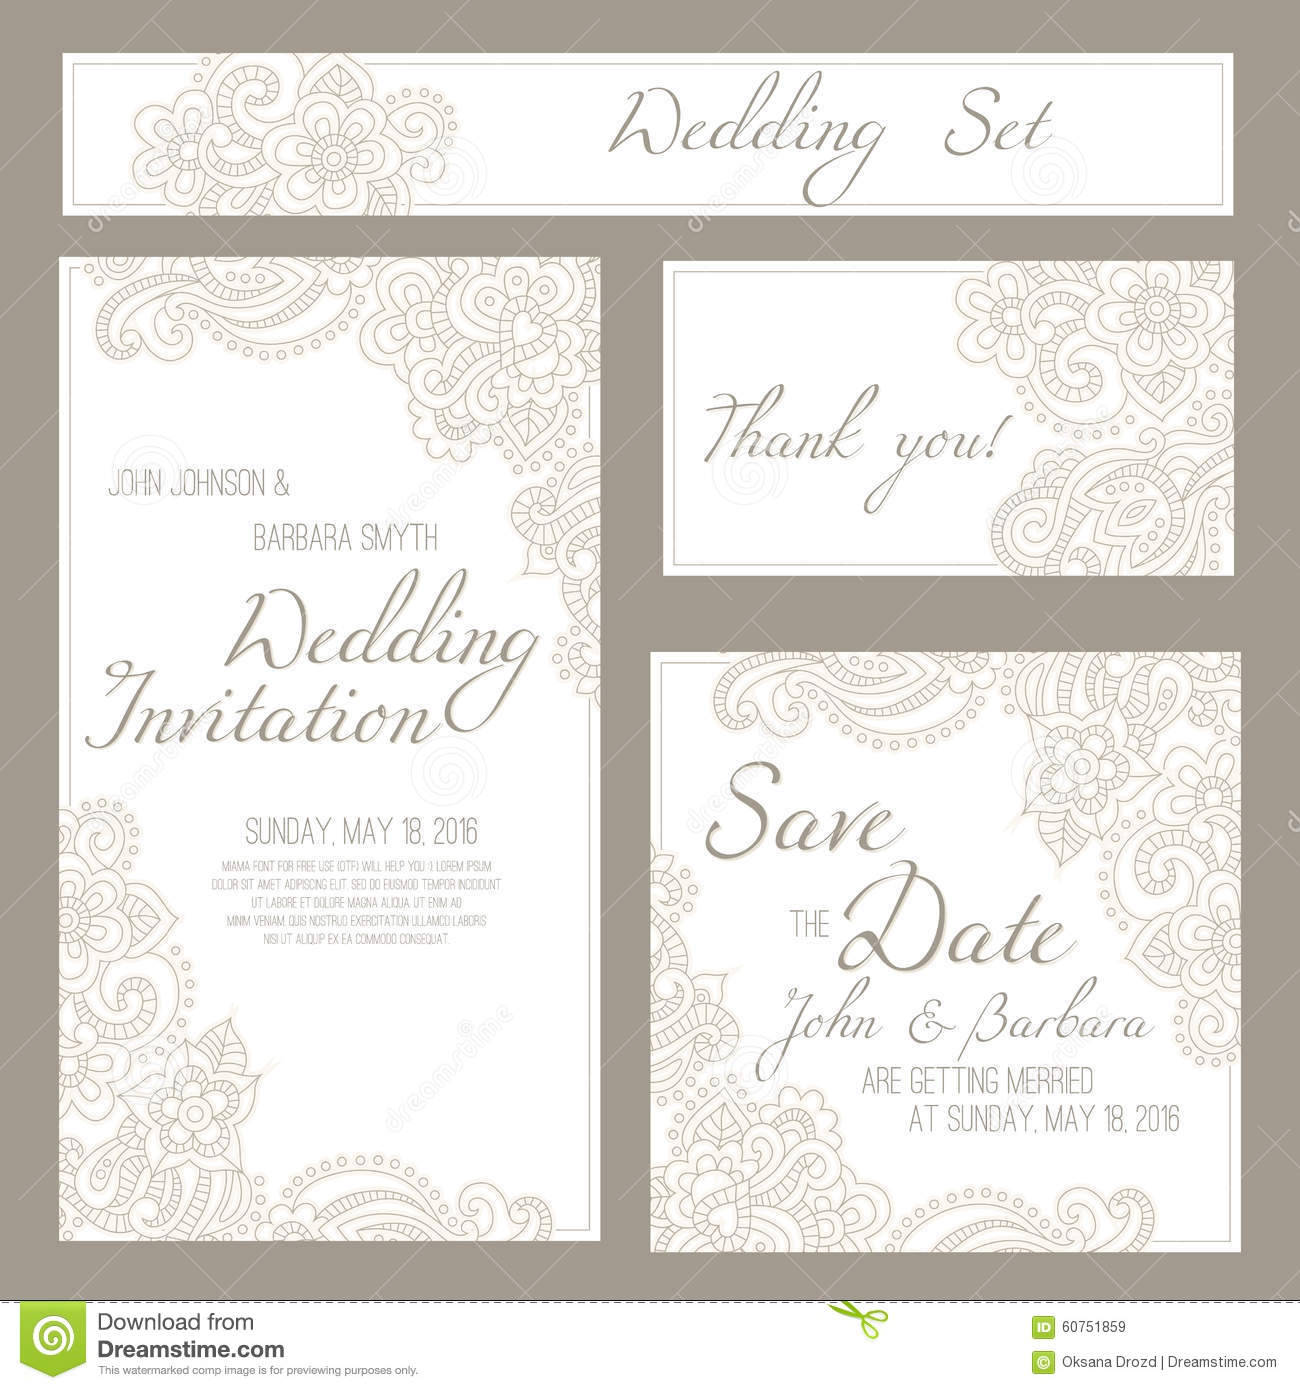 Set of wedding invitation or anniversary cards with romantic floral download set of wedding invitation or anniversary cards with romantic floral background stock vector stopboris Choice Image